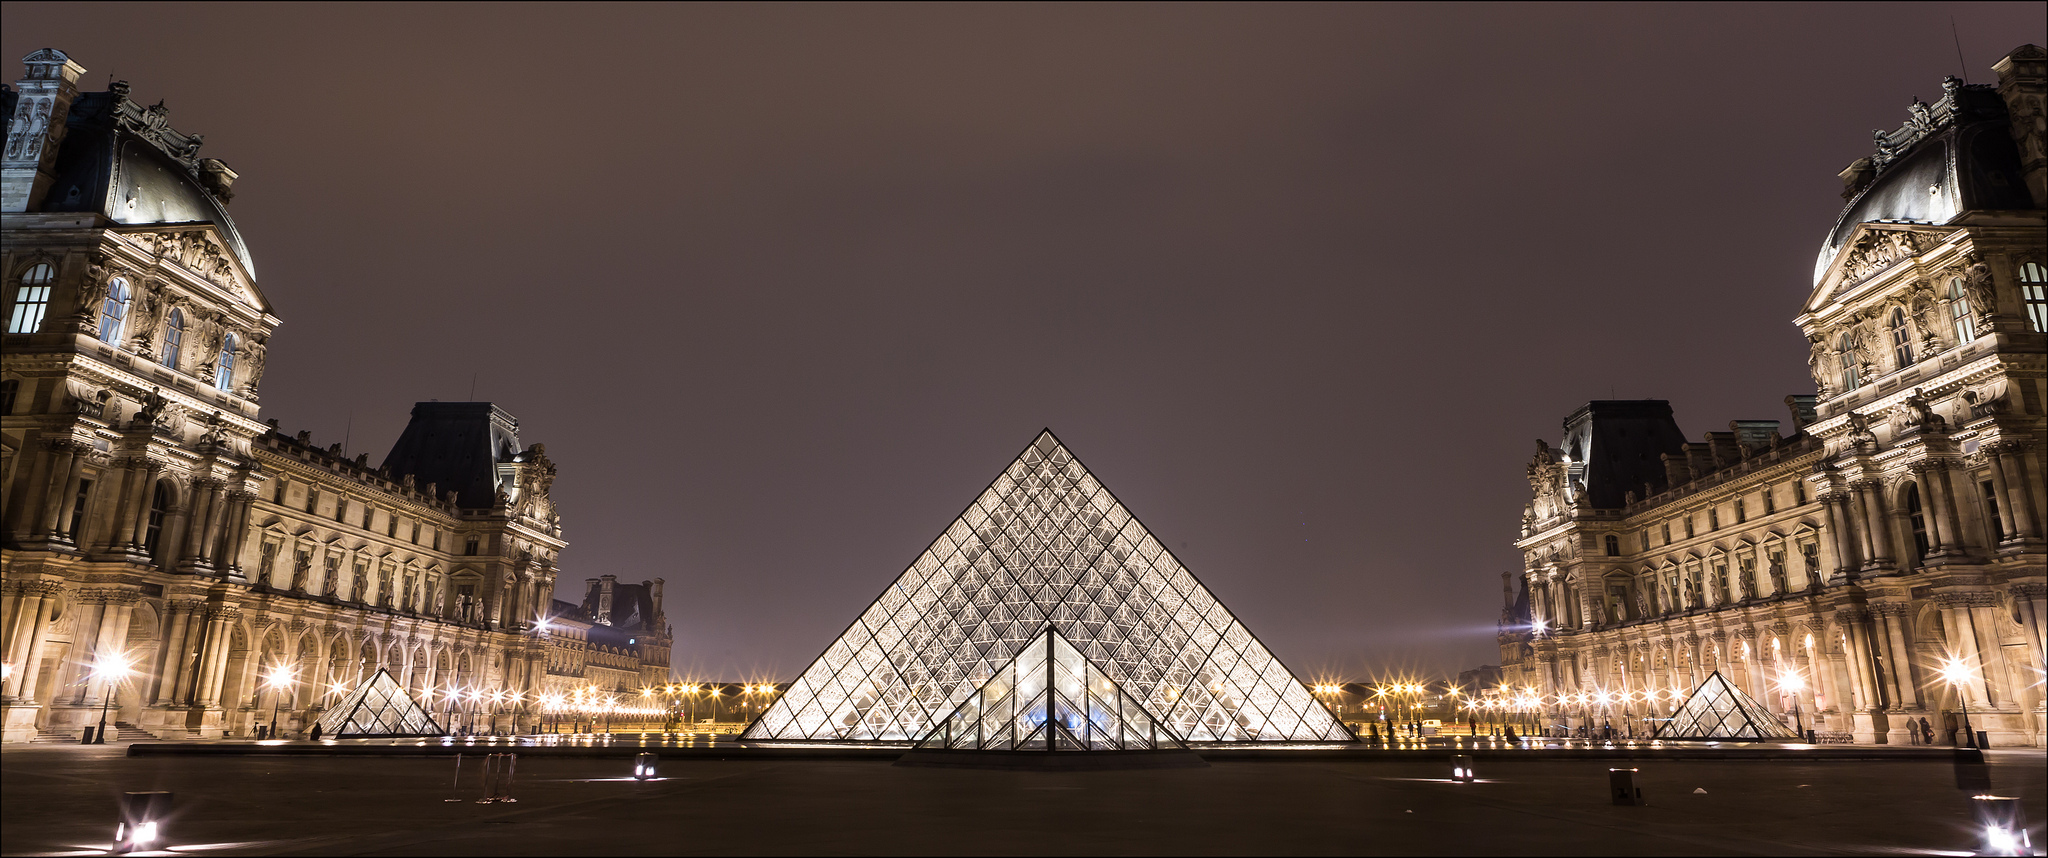 The Louvre - Museum in Paris - Thousand Wonders